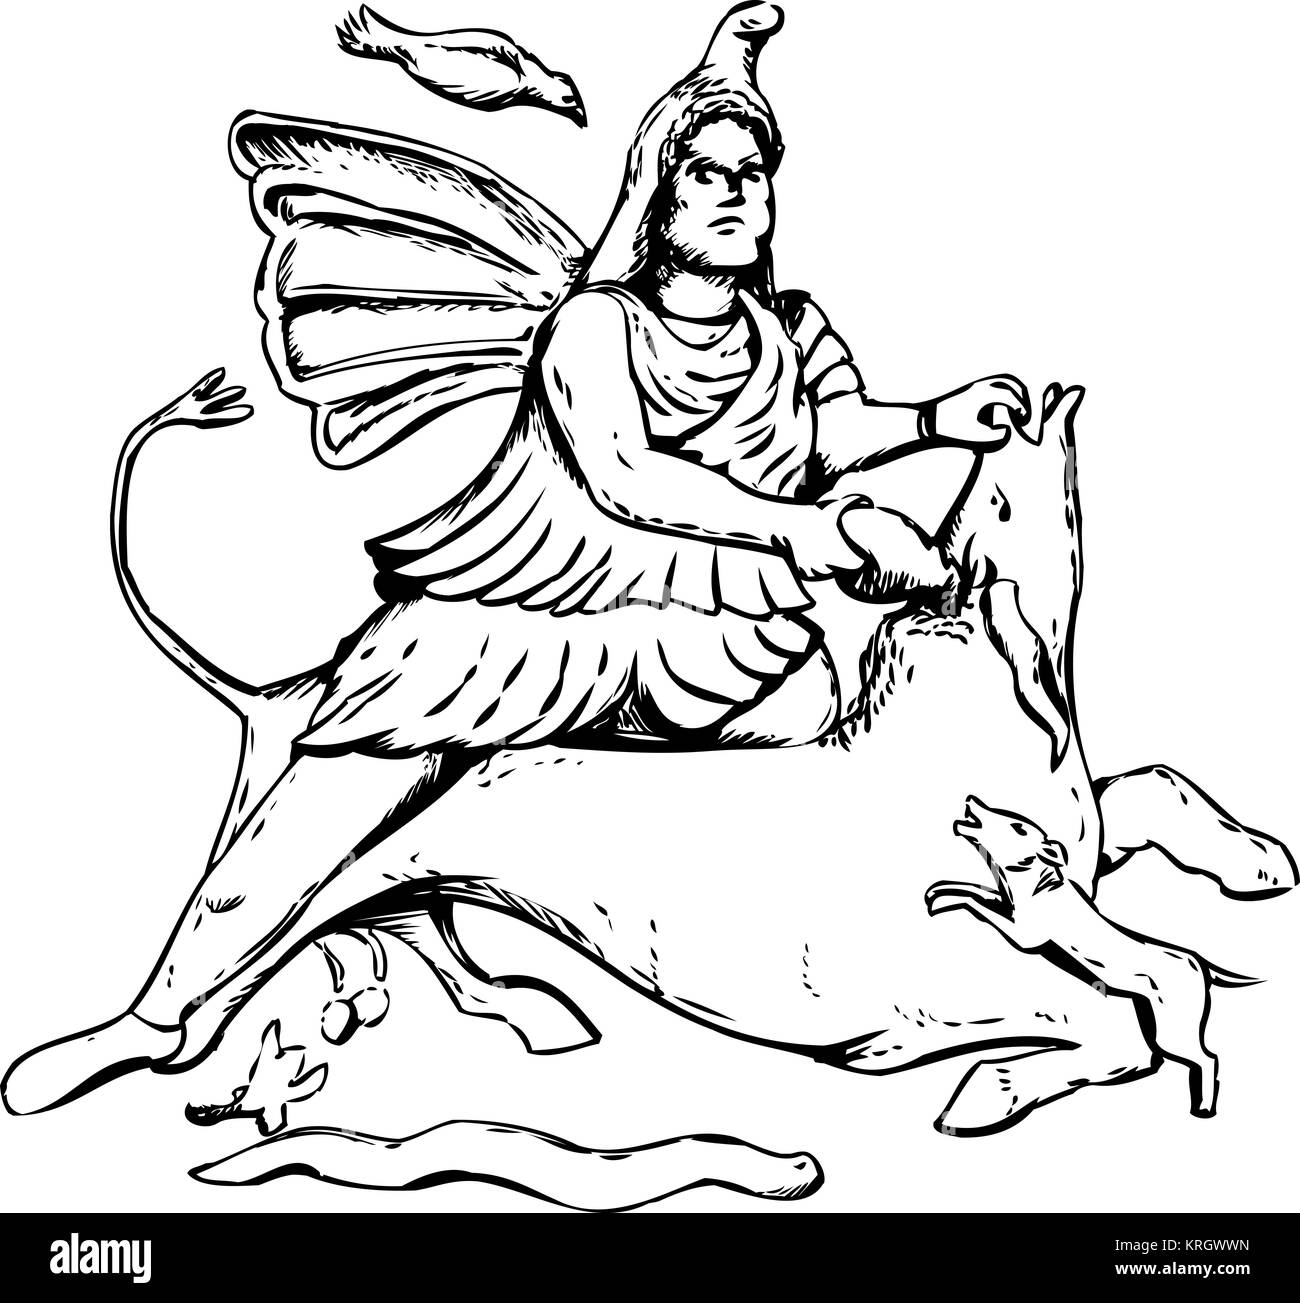 Outline drawing of Mithras slaying a black bull - Stock Image